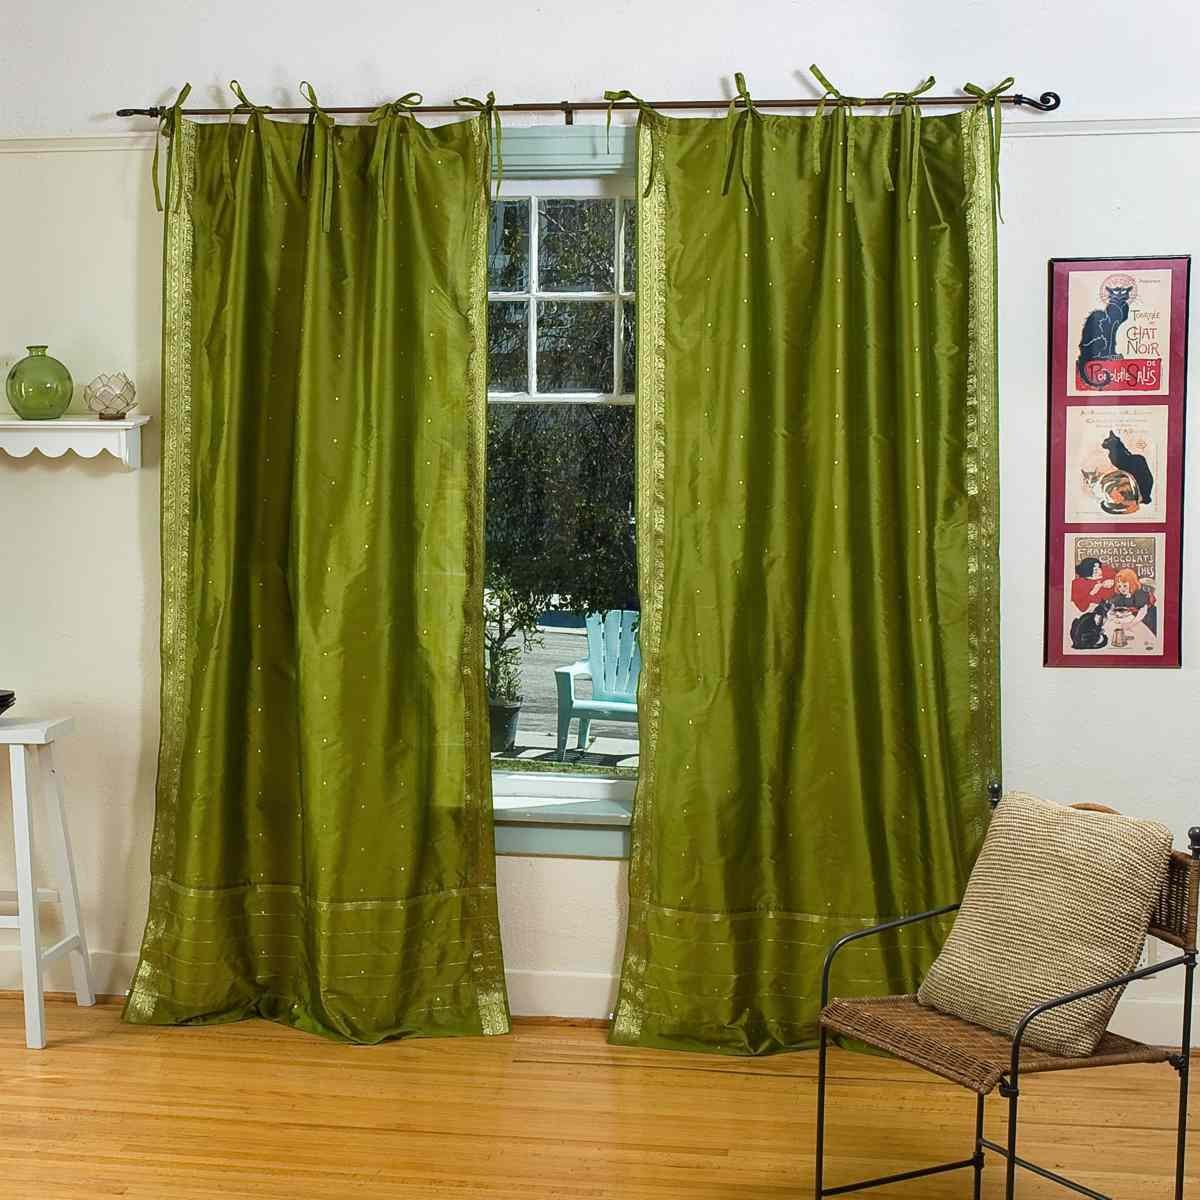 Indian Selections Olive Grün Krawatte Top Sheer Sari Vorhang Fall Panel – Paar, Polyester, Grün, 60 X 108 Inches